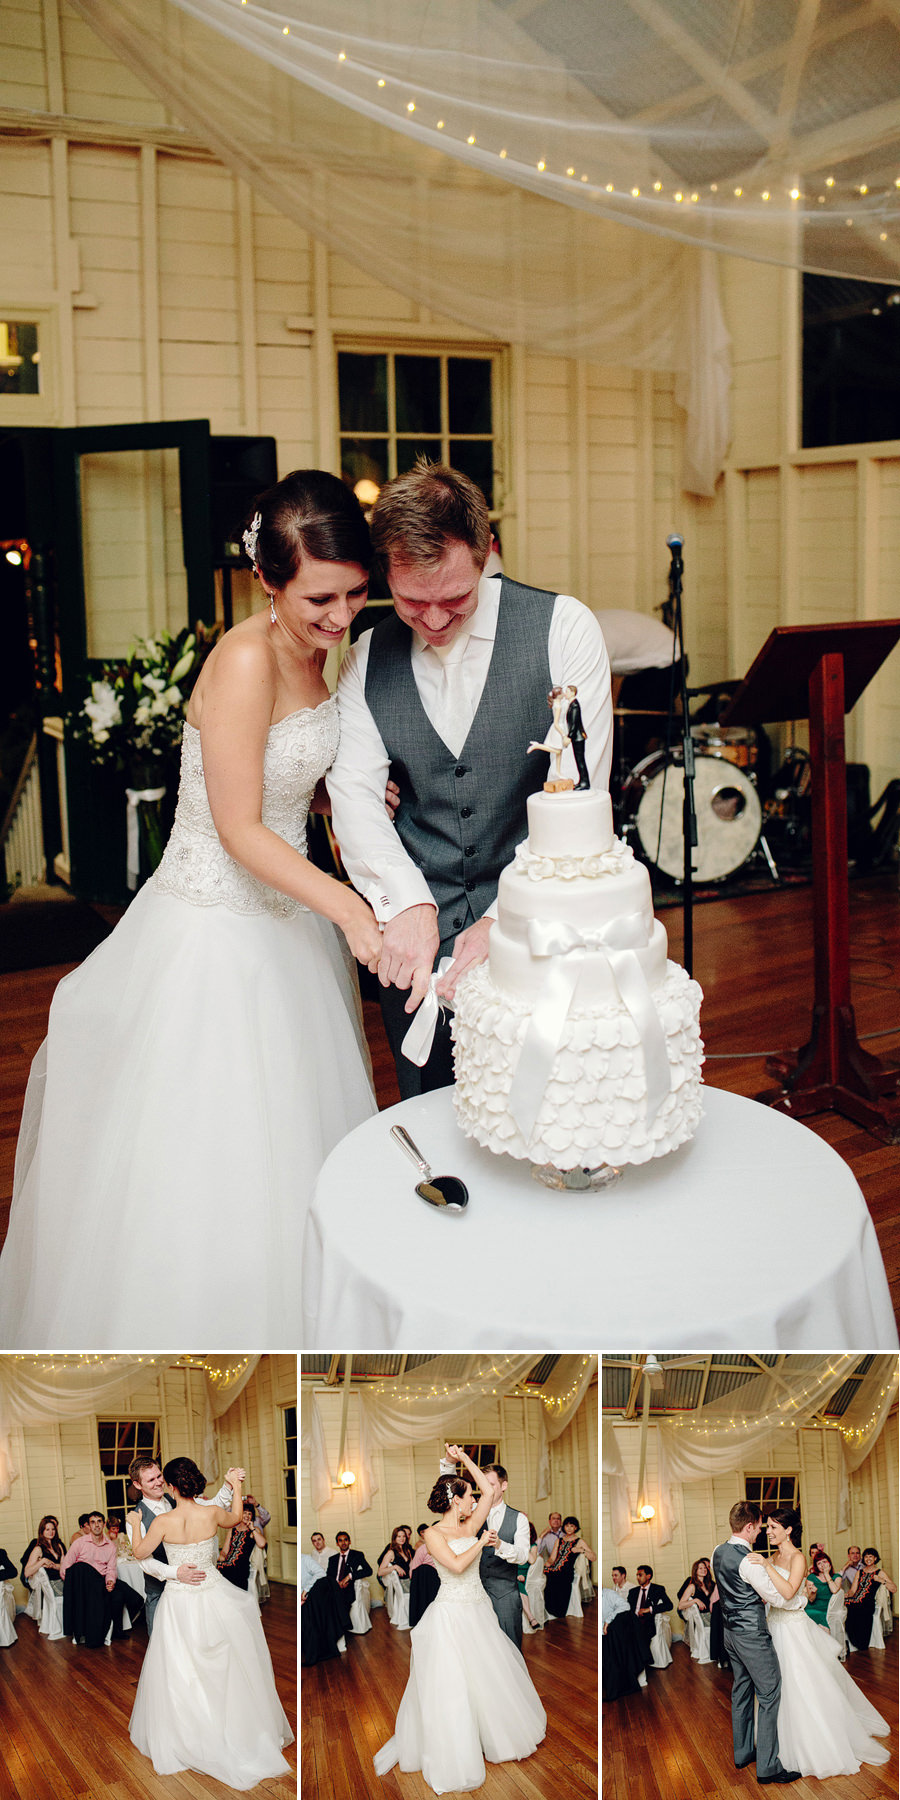 Contemporary Wedding Photographer: Cutting cake & first dance